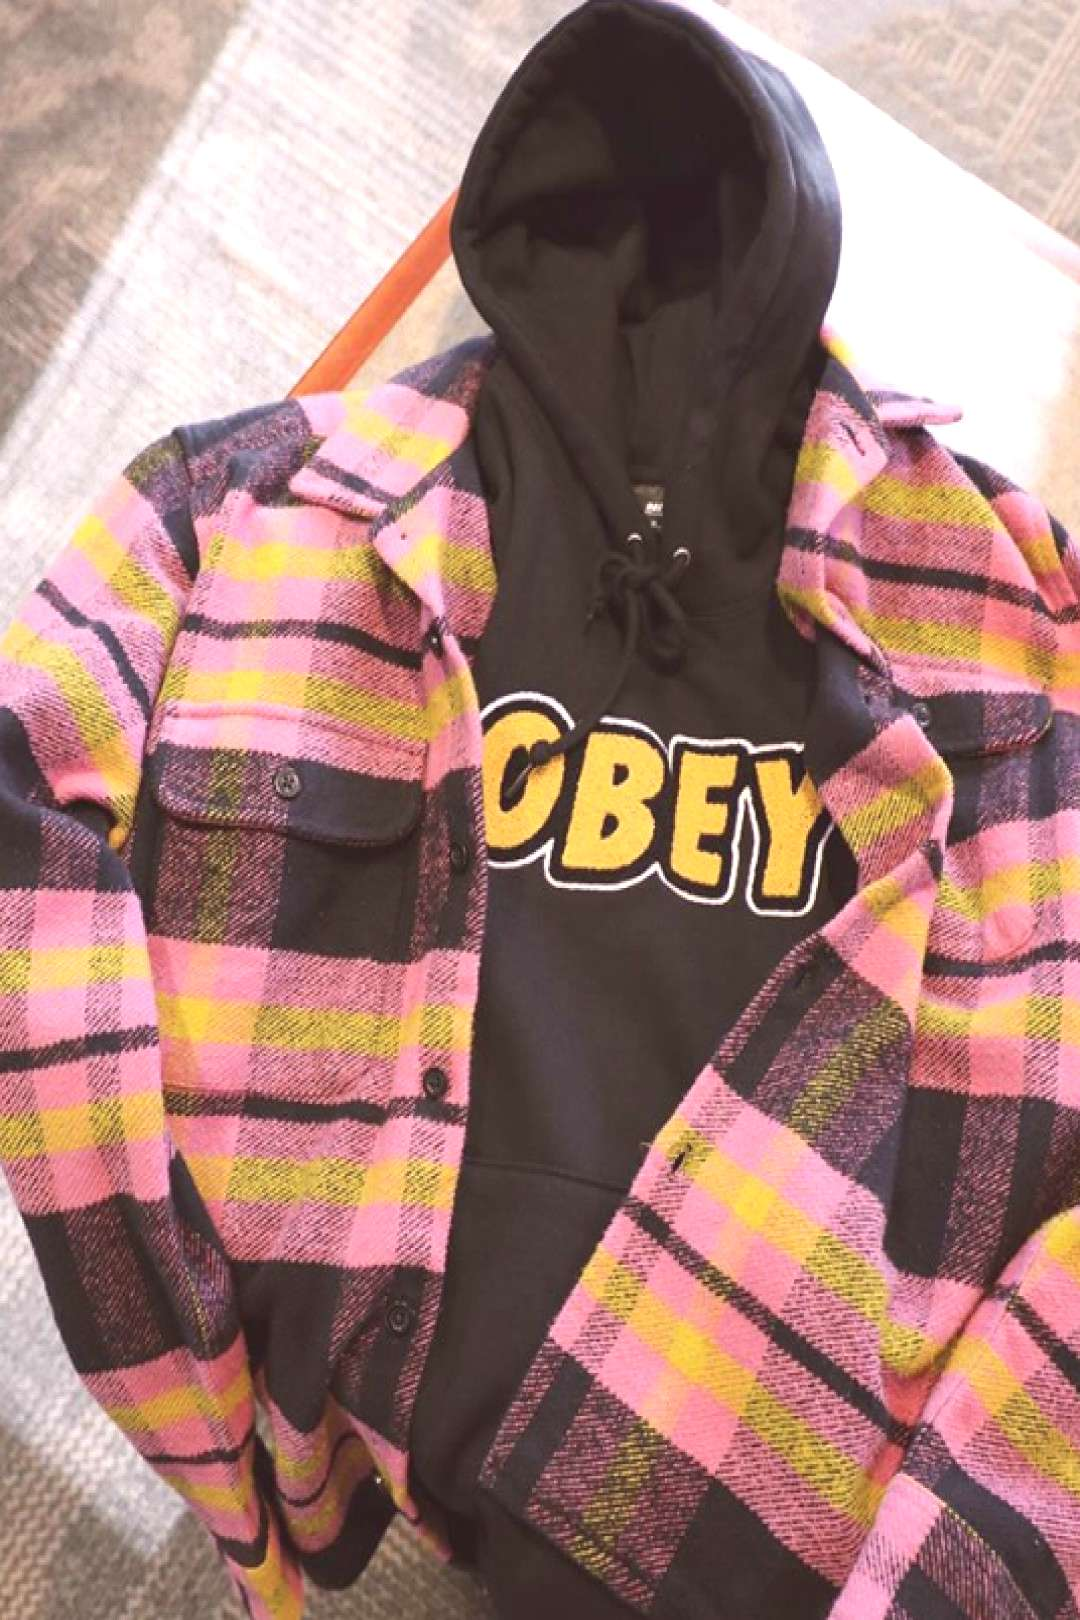 Obey Clothing available at PacSun!Obey